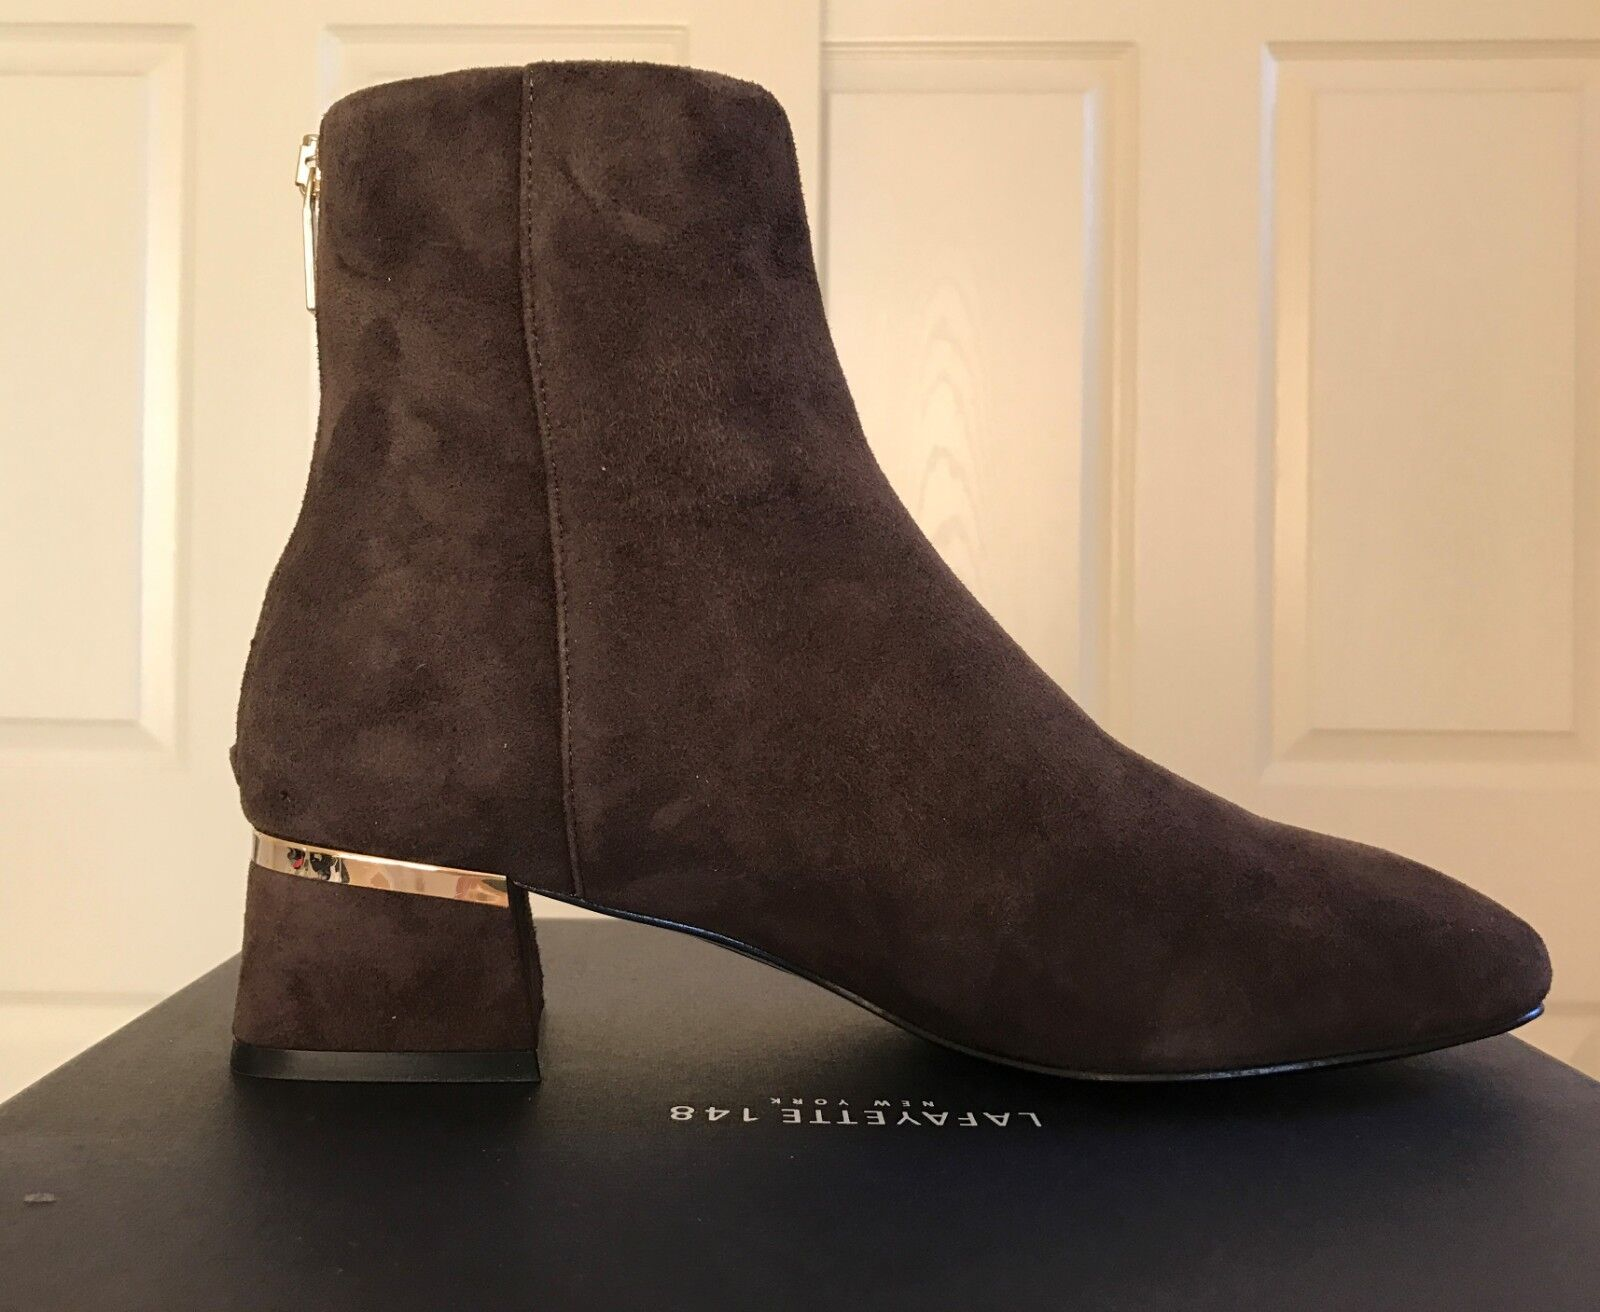 NEW in BOX DESIGNER LAFAYETTE women HADLI BOOTIE Brown Suede zipper boots 8 $498